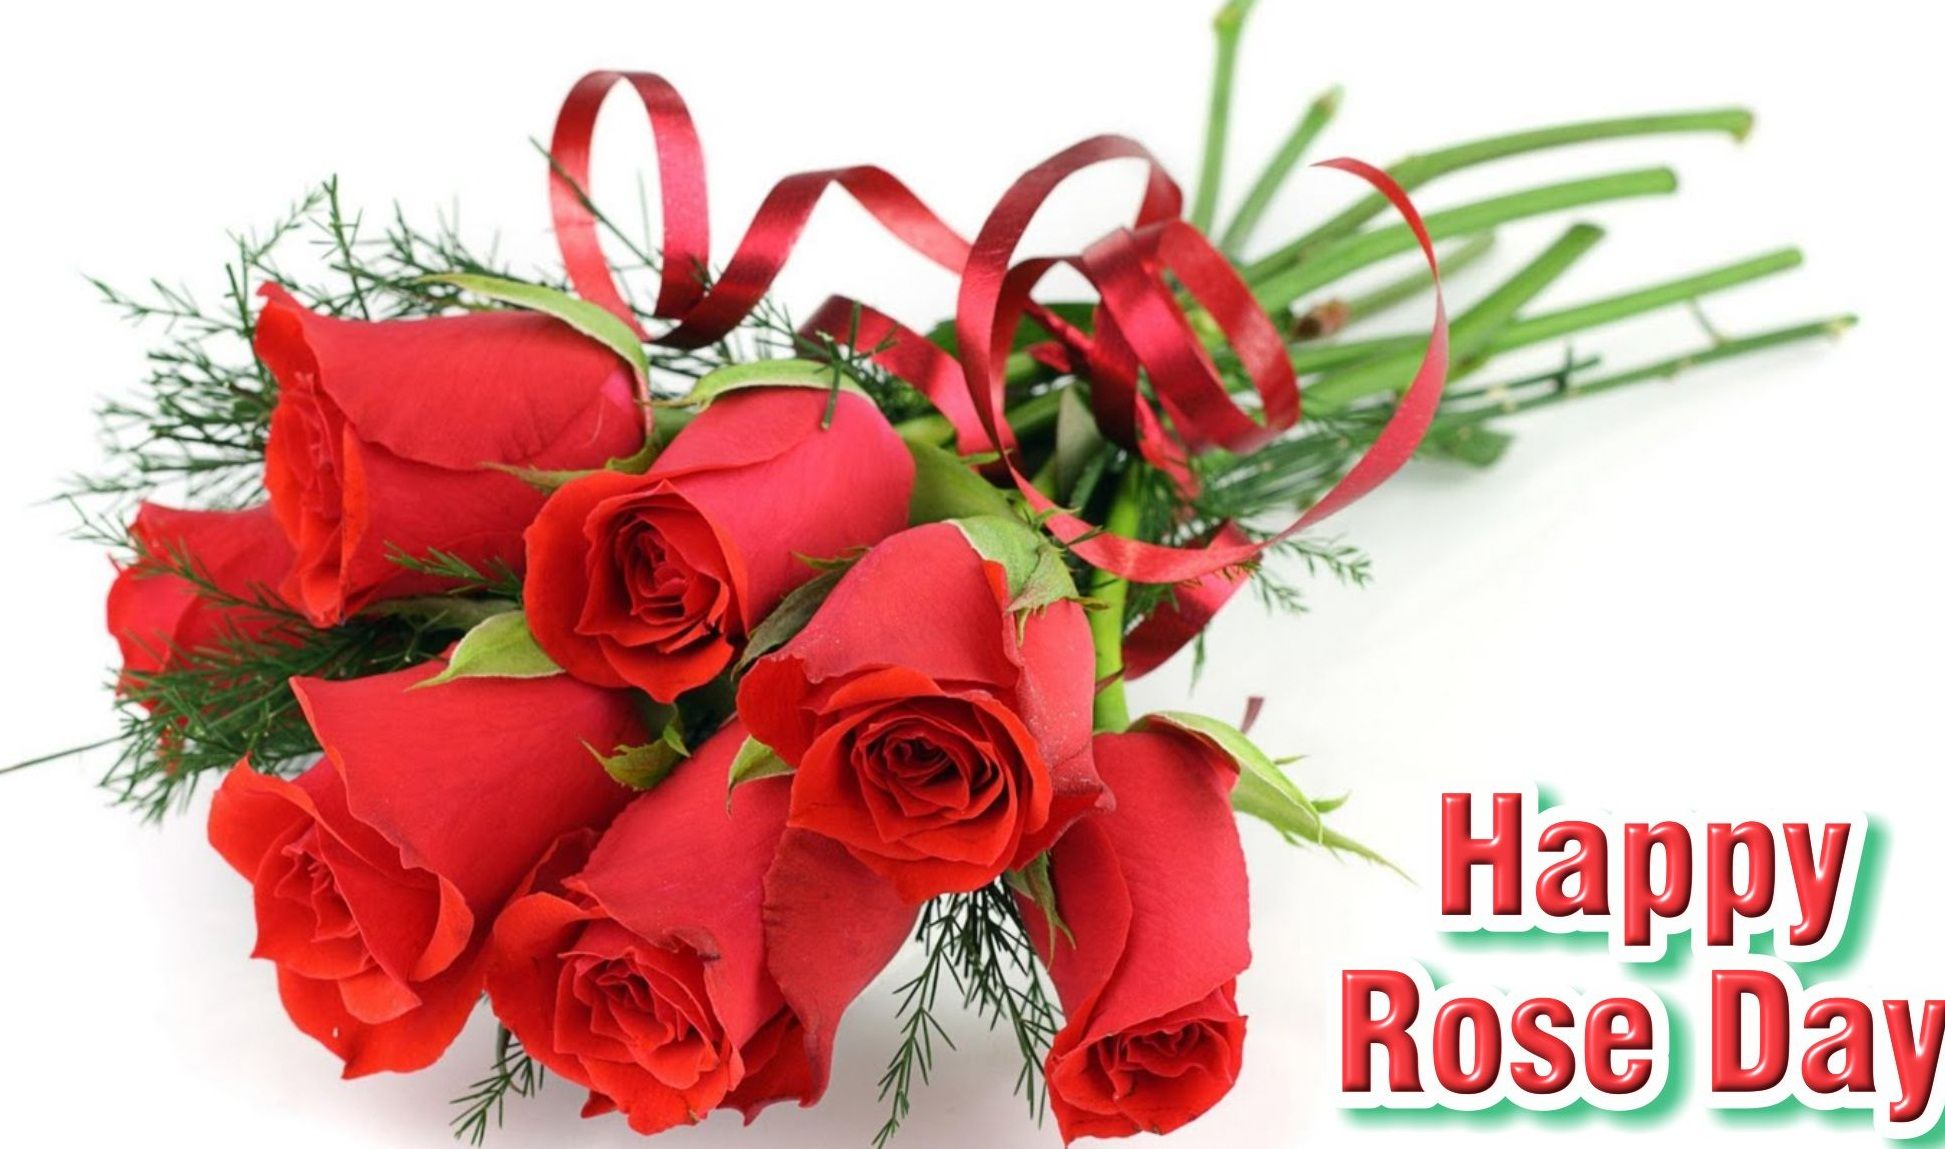 rose day photos fun lol happy new year photo aspen wishes messages